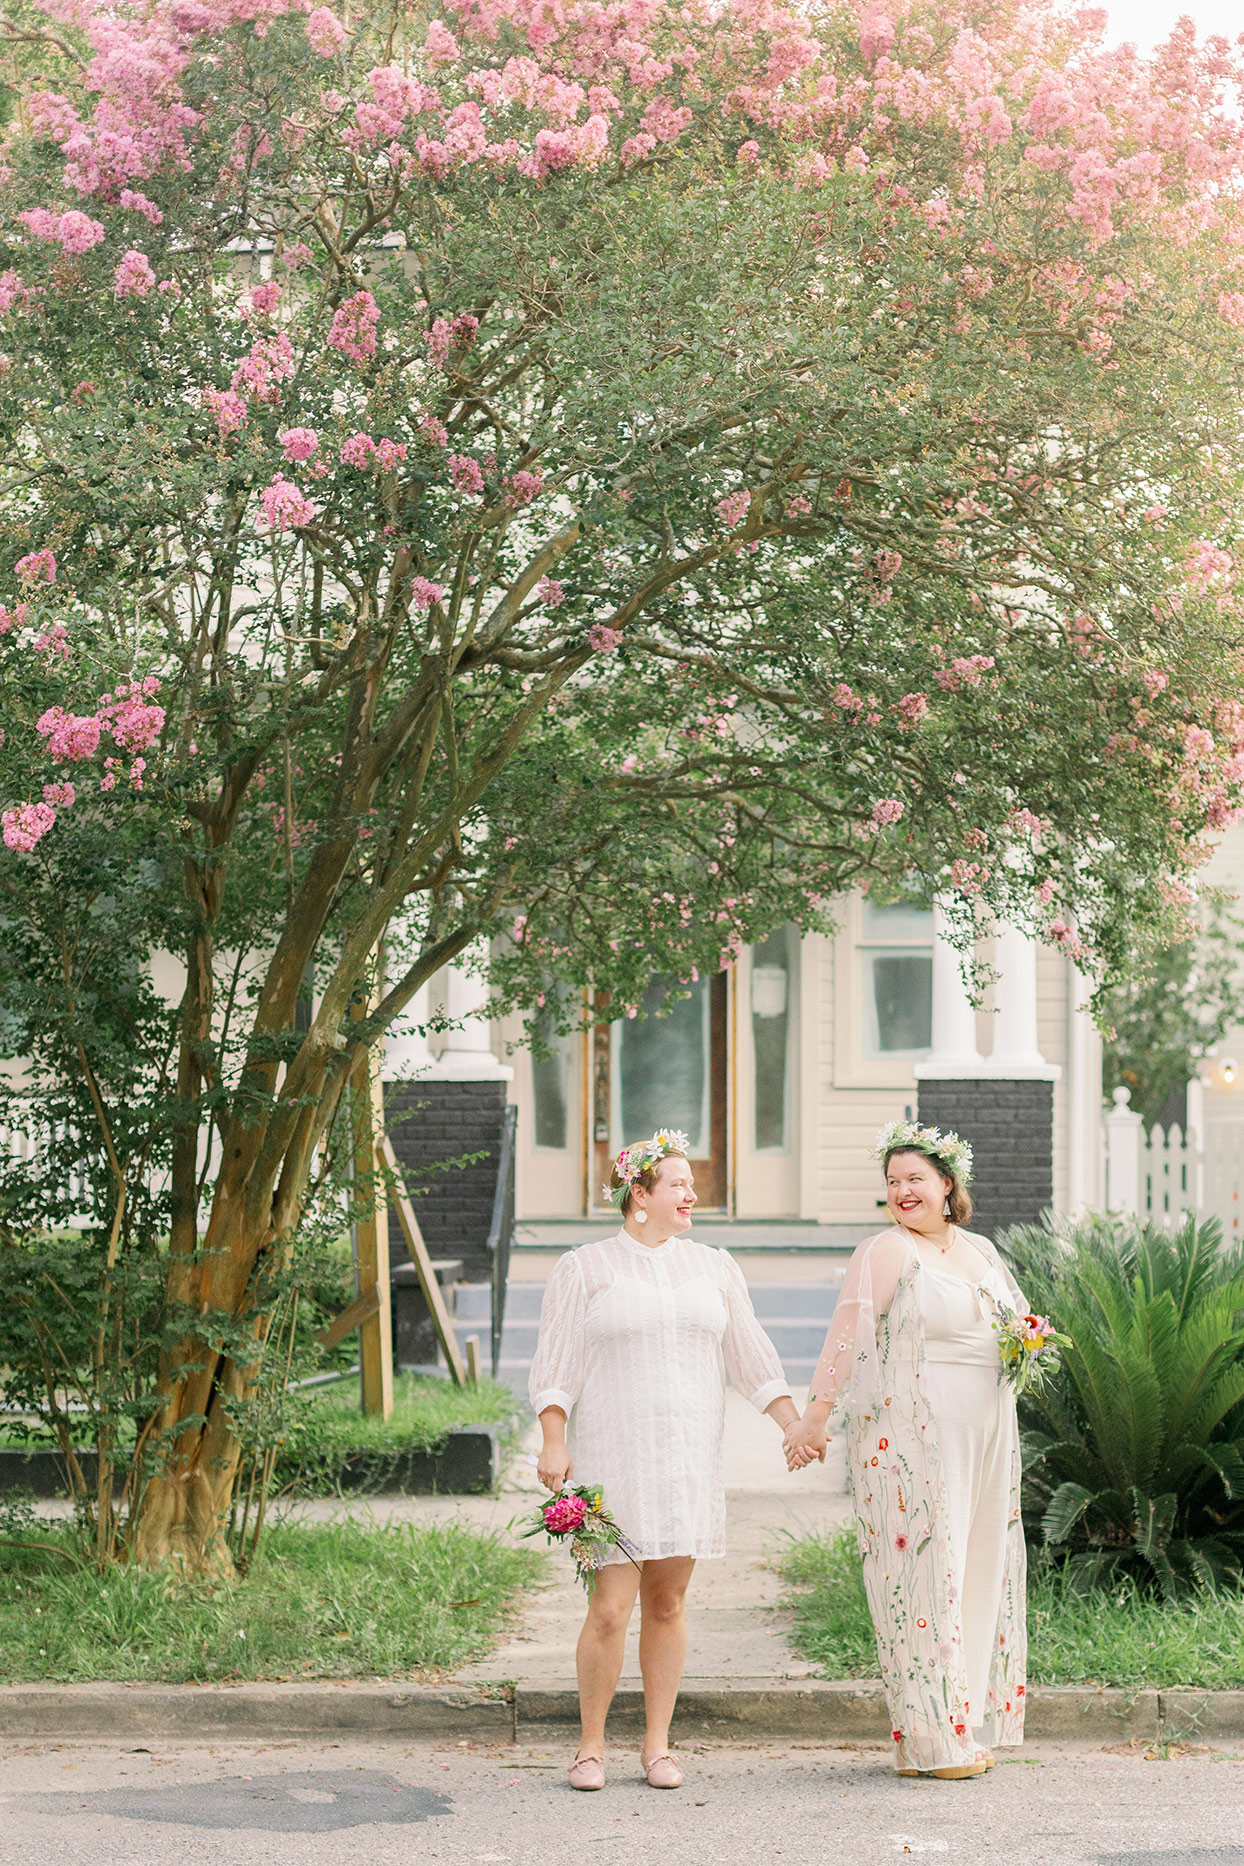 brides standing on street under pink floral tree